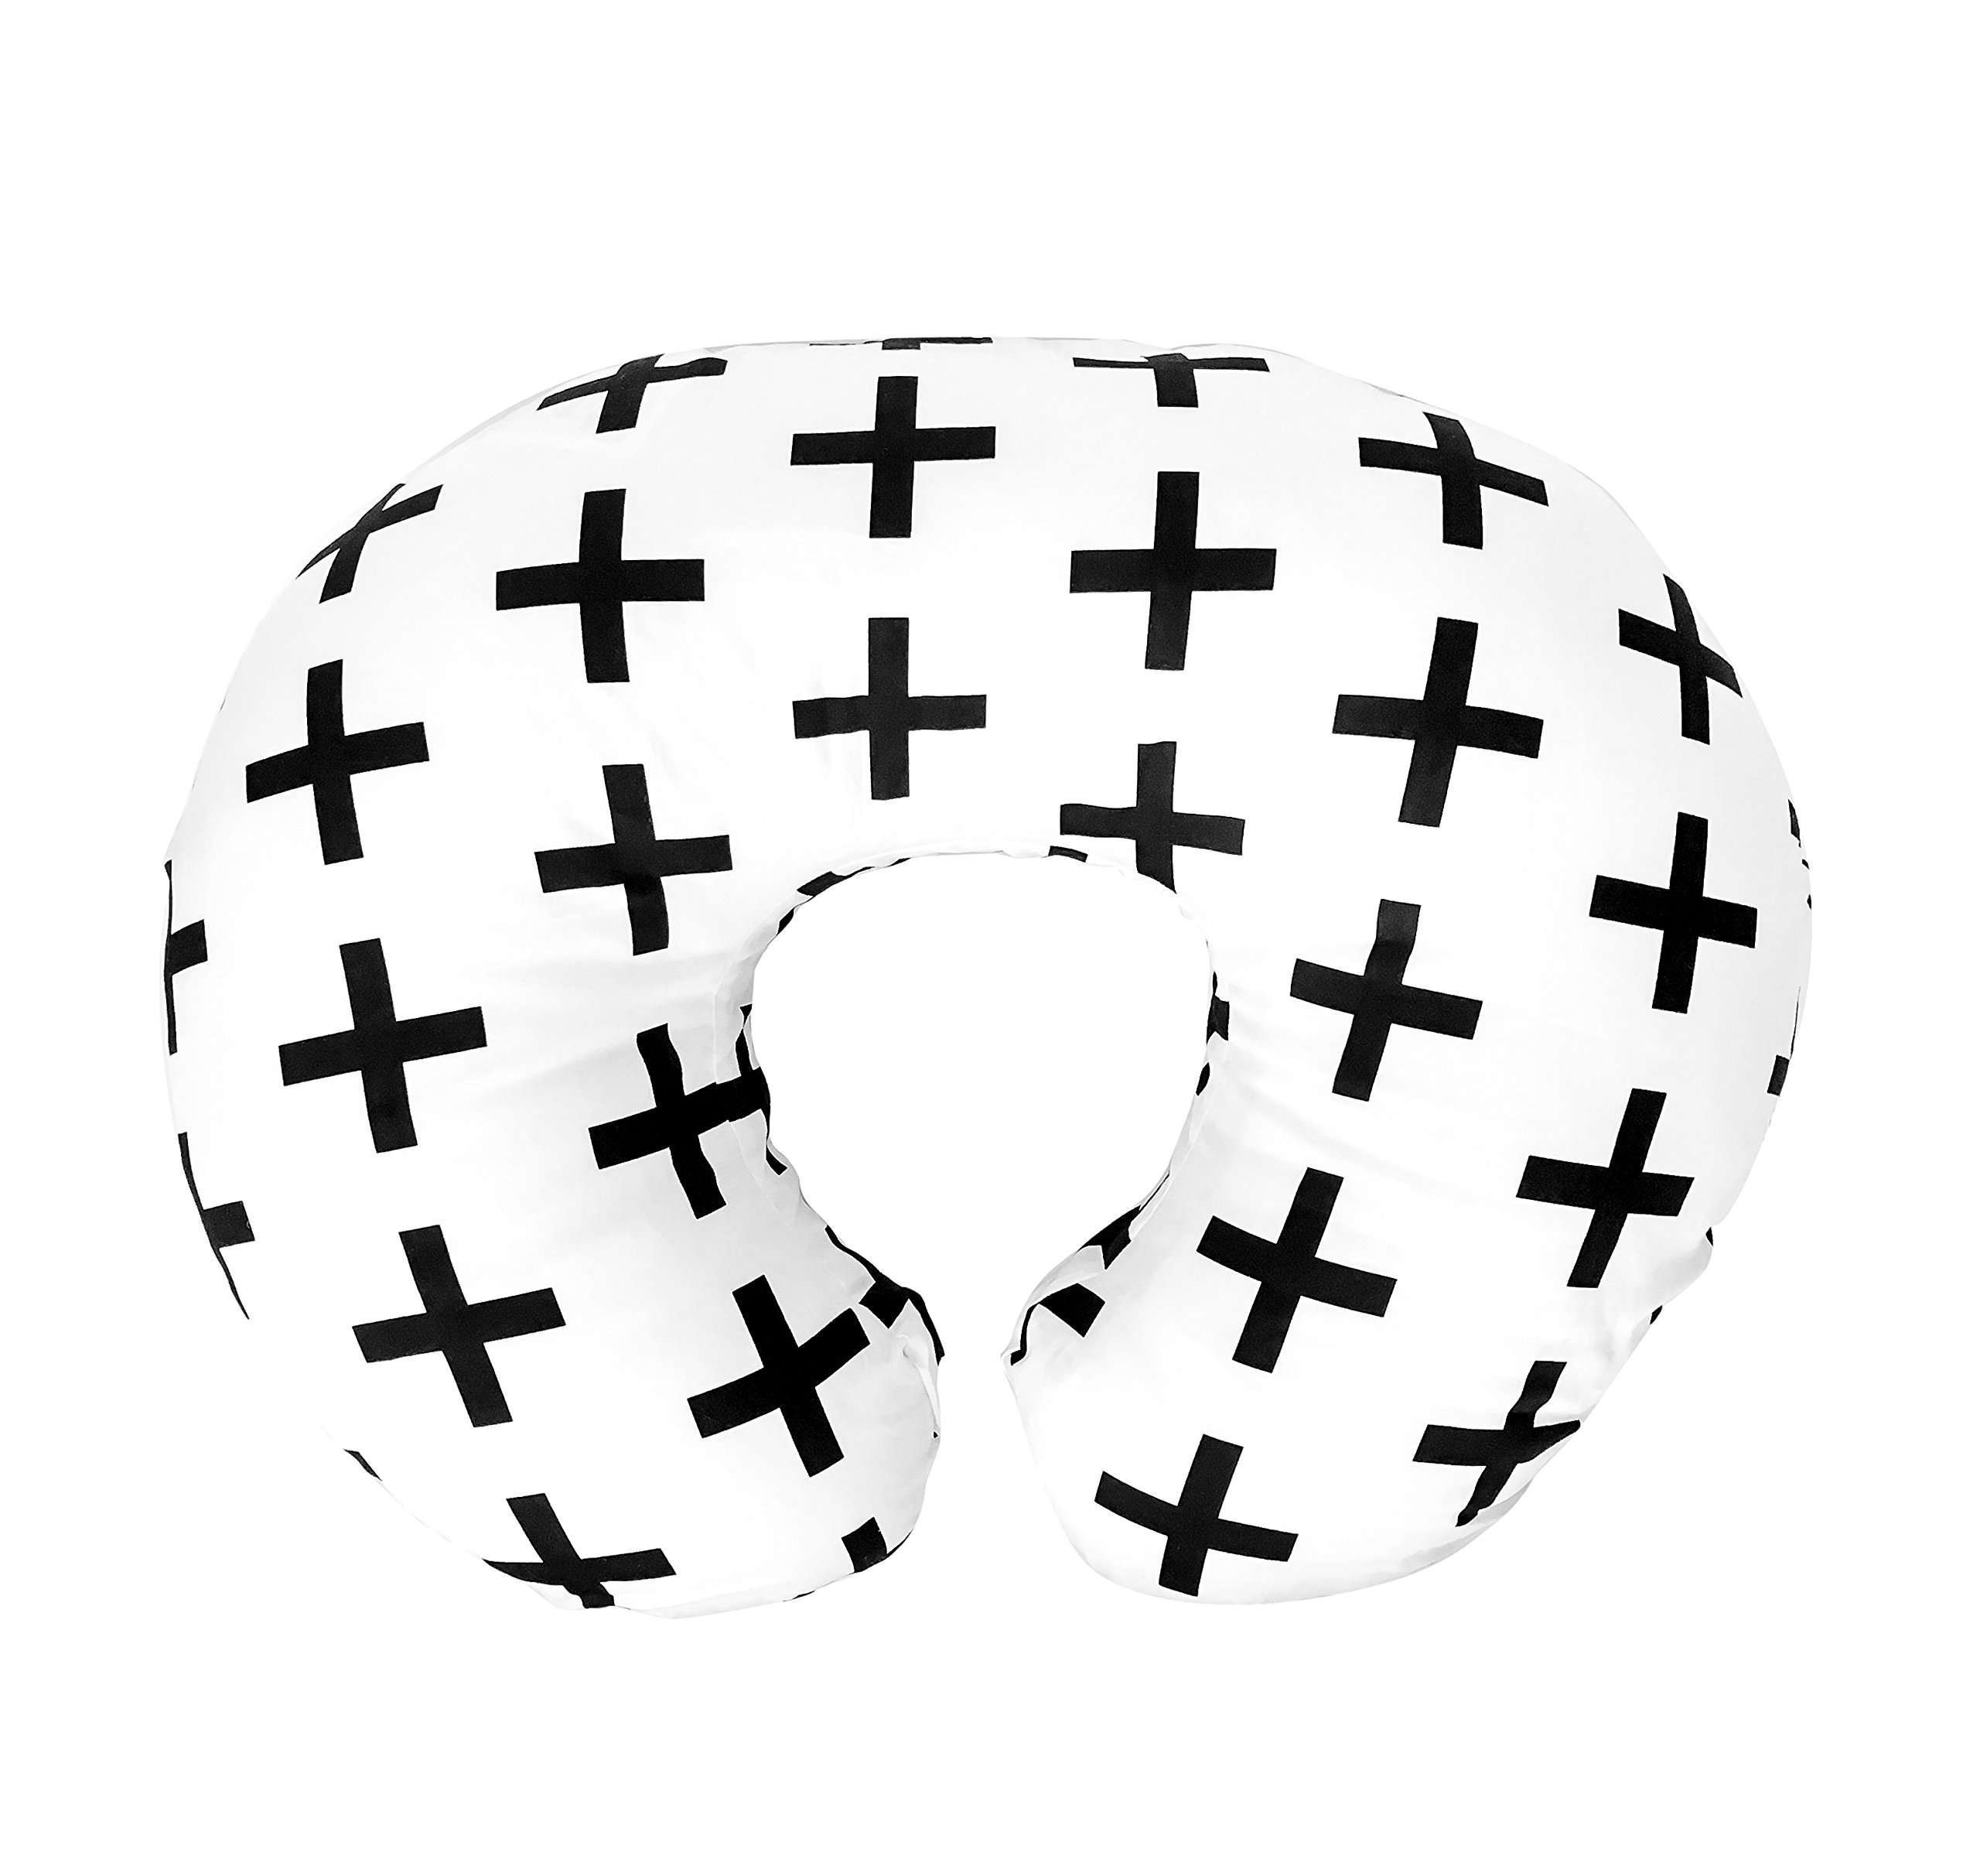 Premium Quality Nursing Pillow Cover by Mila Millie - Nordic Swiss Black Cross Unisex Design Slipcover - 100% Cotton Hypoallergenic - Perfect for Breastfeeding Mothers - Baby Shower Gift by Mila Millie